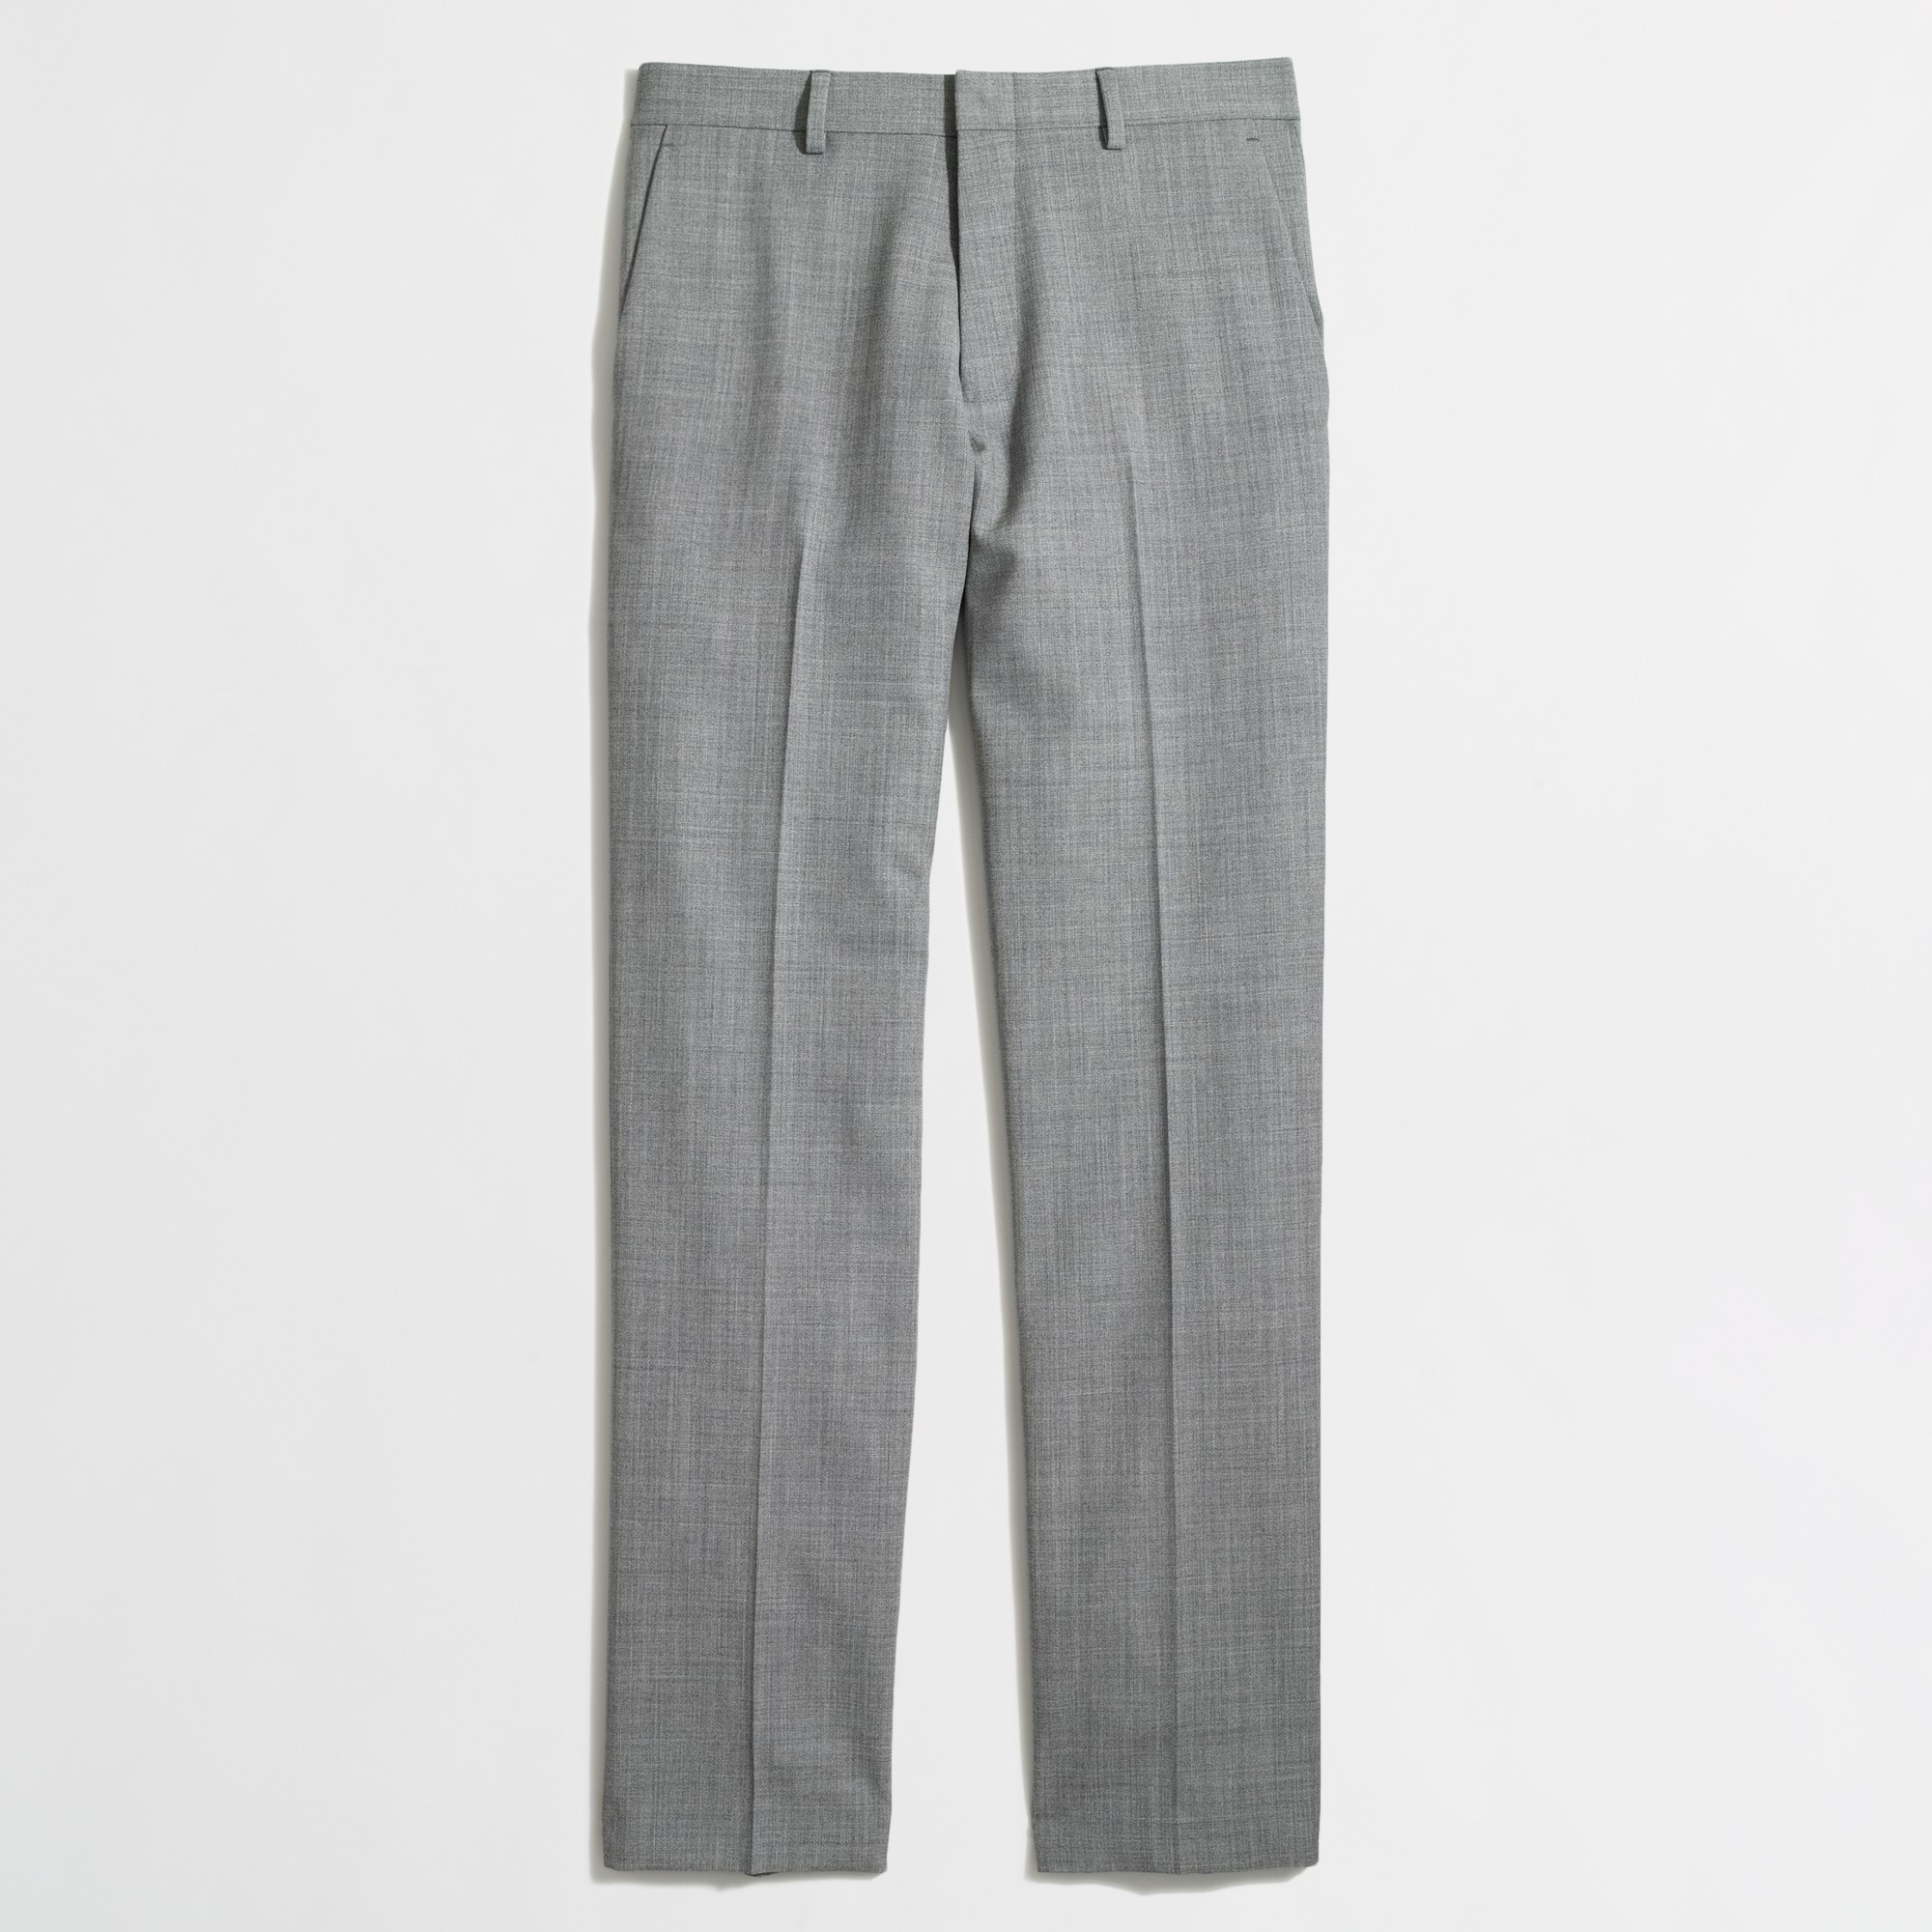 Image 2 for Slim-fit Thompson suit pant in Voyager wool